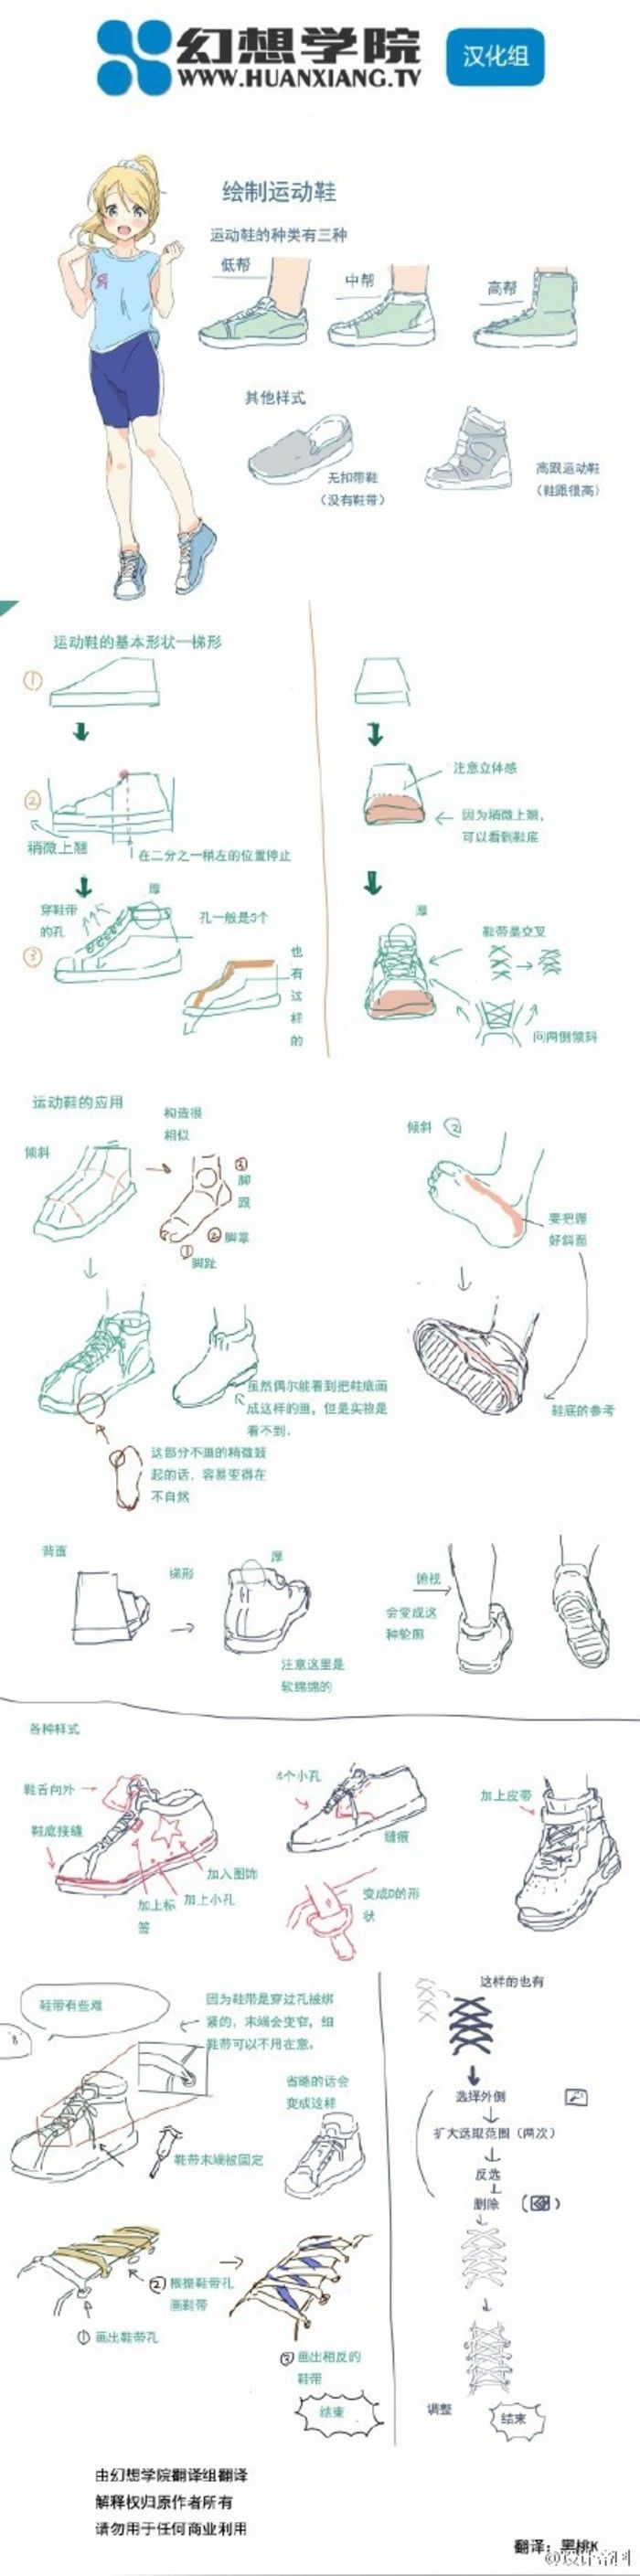 """Find This Pin And More On """"�ⓡⓐⓦⓘⓝⓖ """"�ⓔⓛⓟ How To Draw Shoes"""